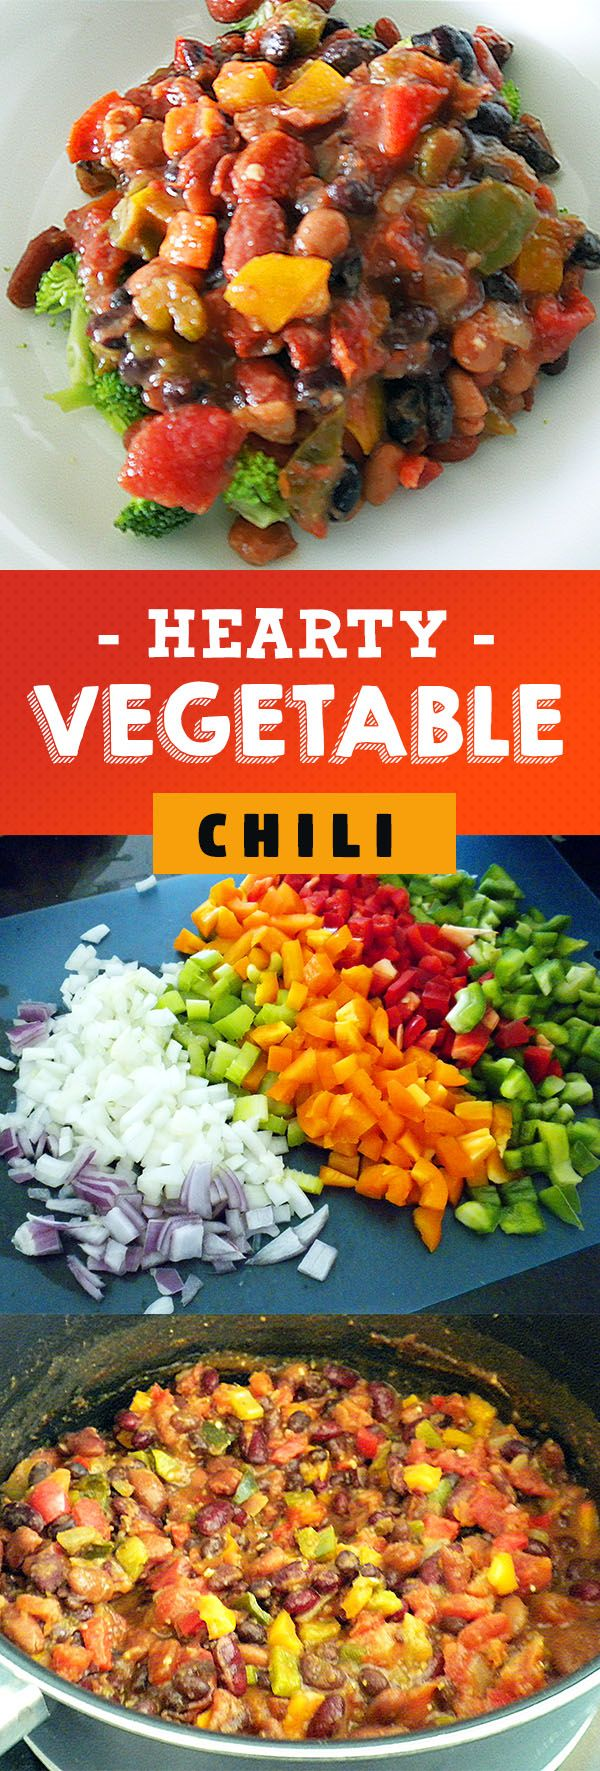 Hearty Vegetable Chili A Protein Packed Vegan Meal Vegan